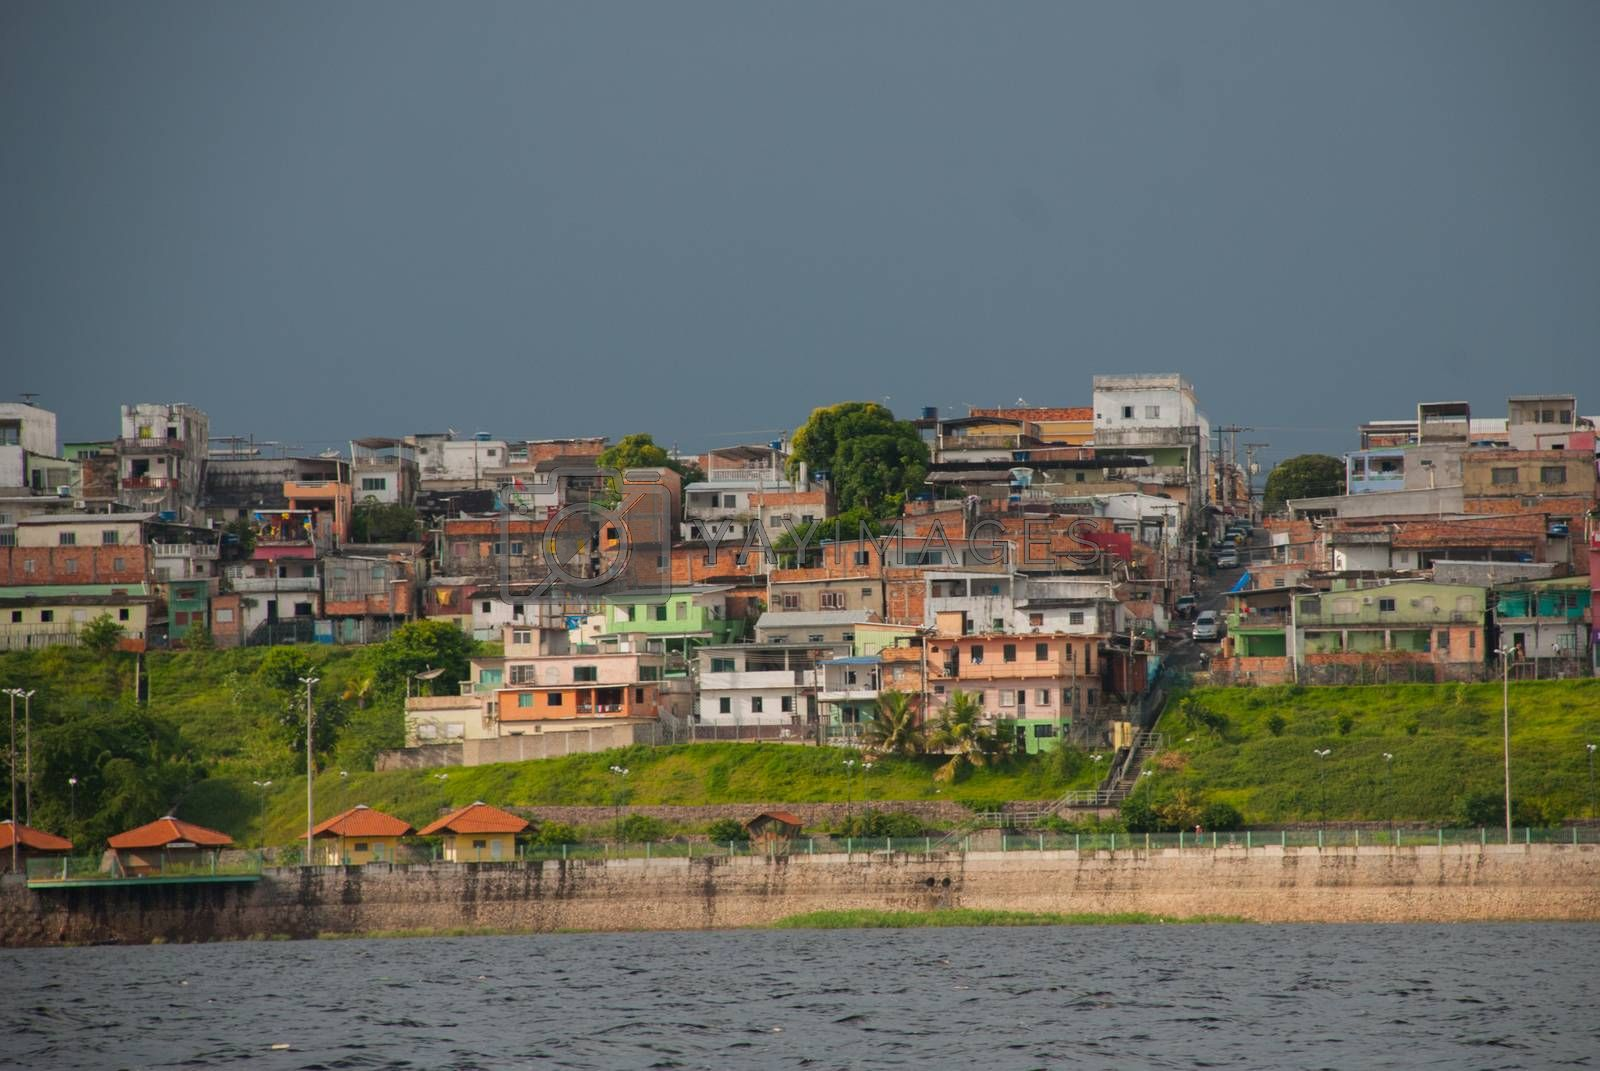 MANAUS, AMAZONAS, BRAZIL - MARCH 2019: Matriz Church. Popular tourist trip on the ship. View from the boat to the port city of Manaus.